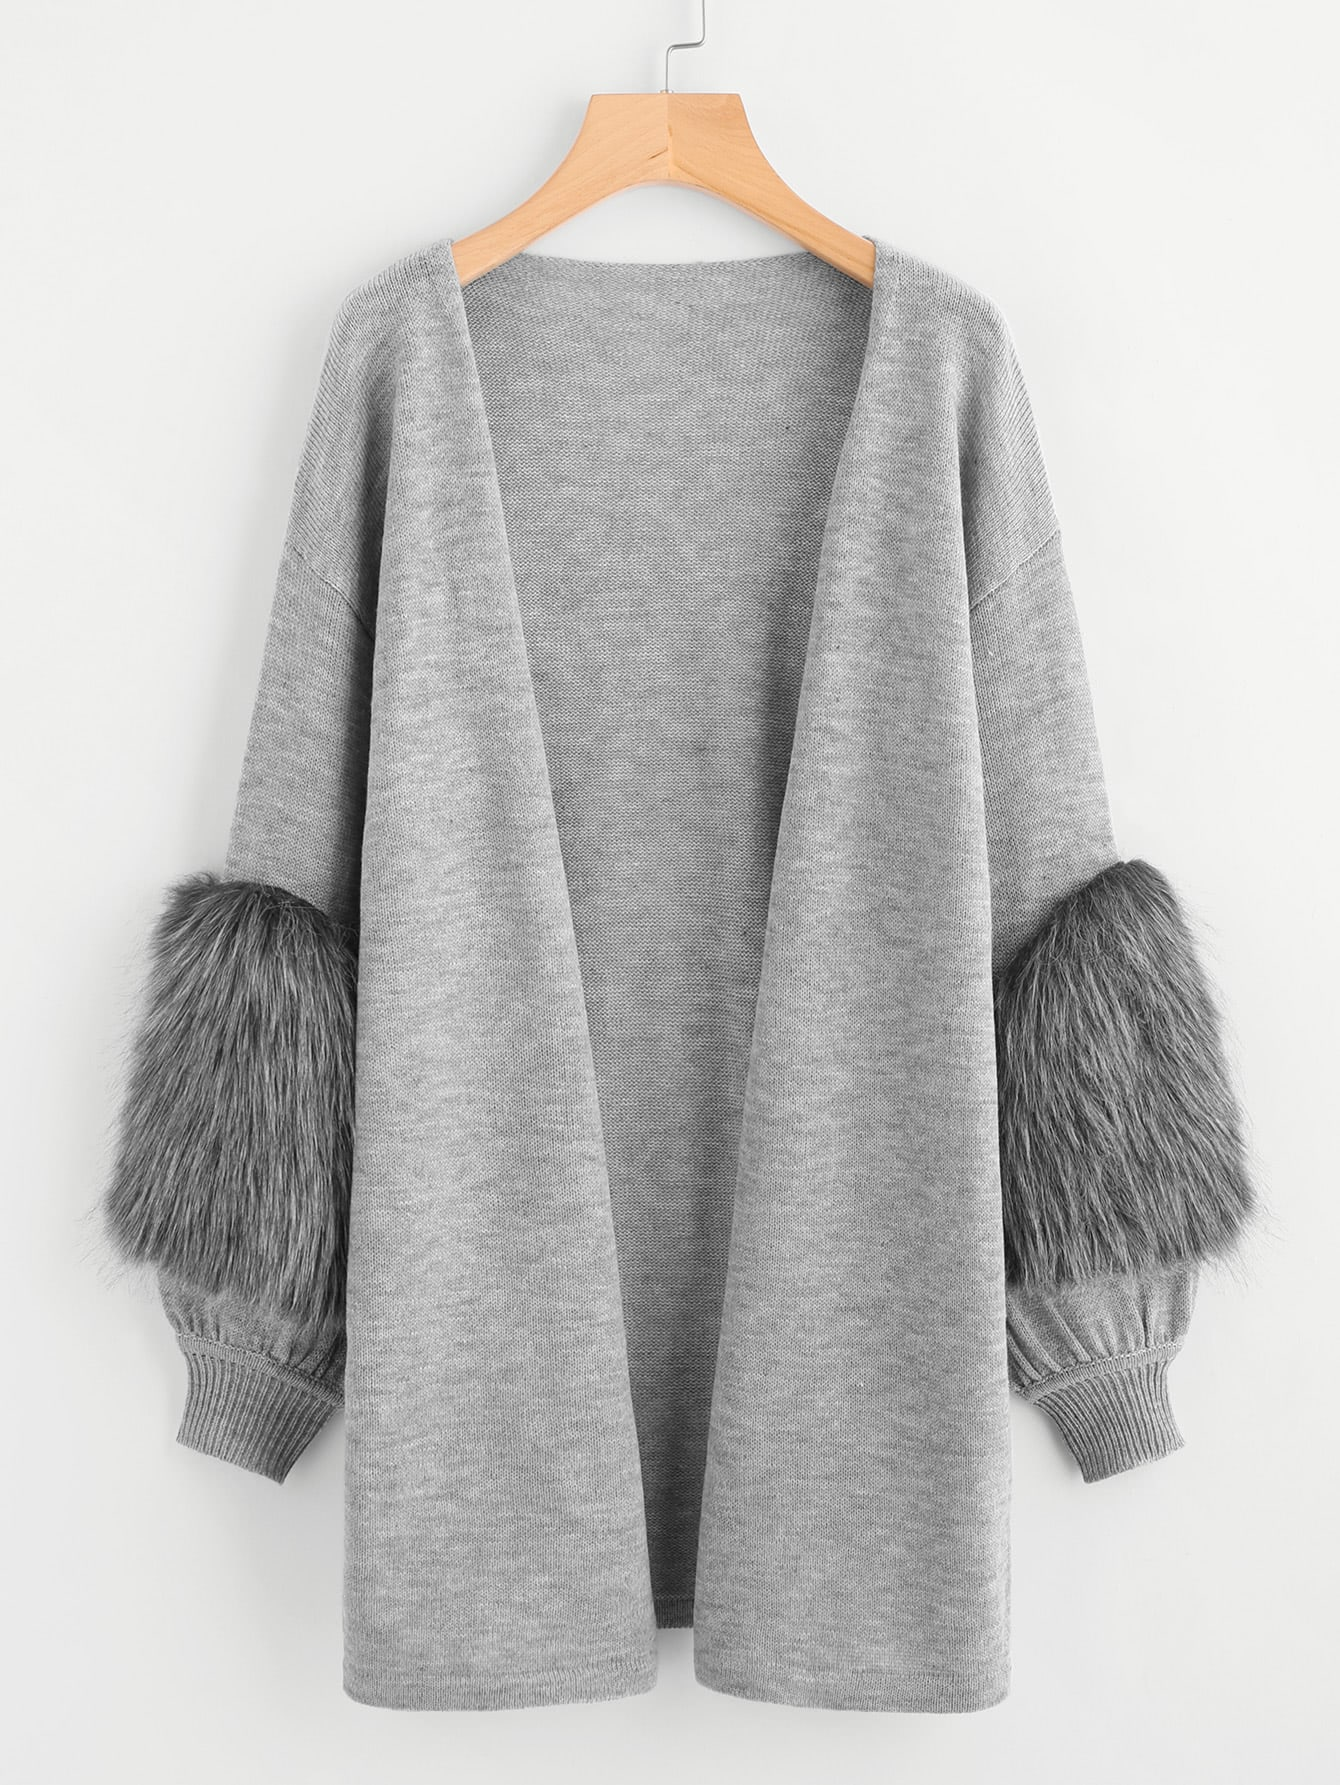 Contrast Faux Fur Sleeve Open Front Cardigan grey fashion sleeveless artificial fur open front coat